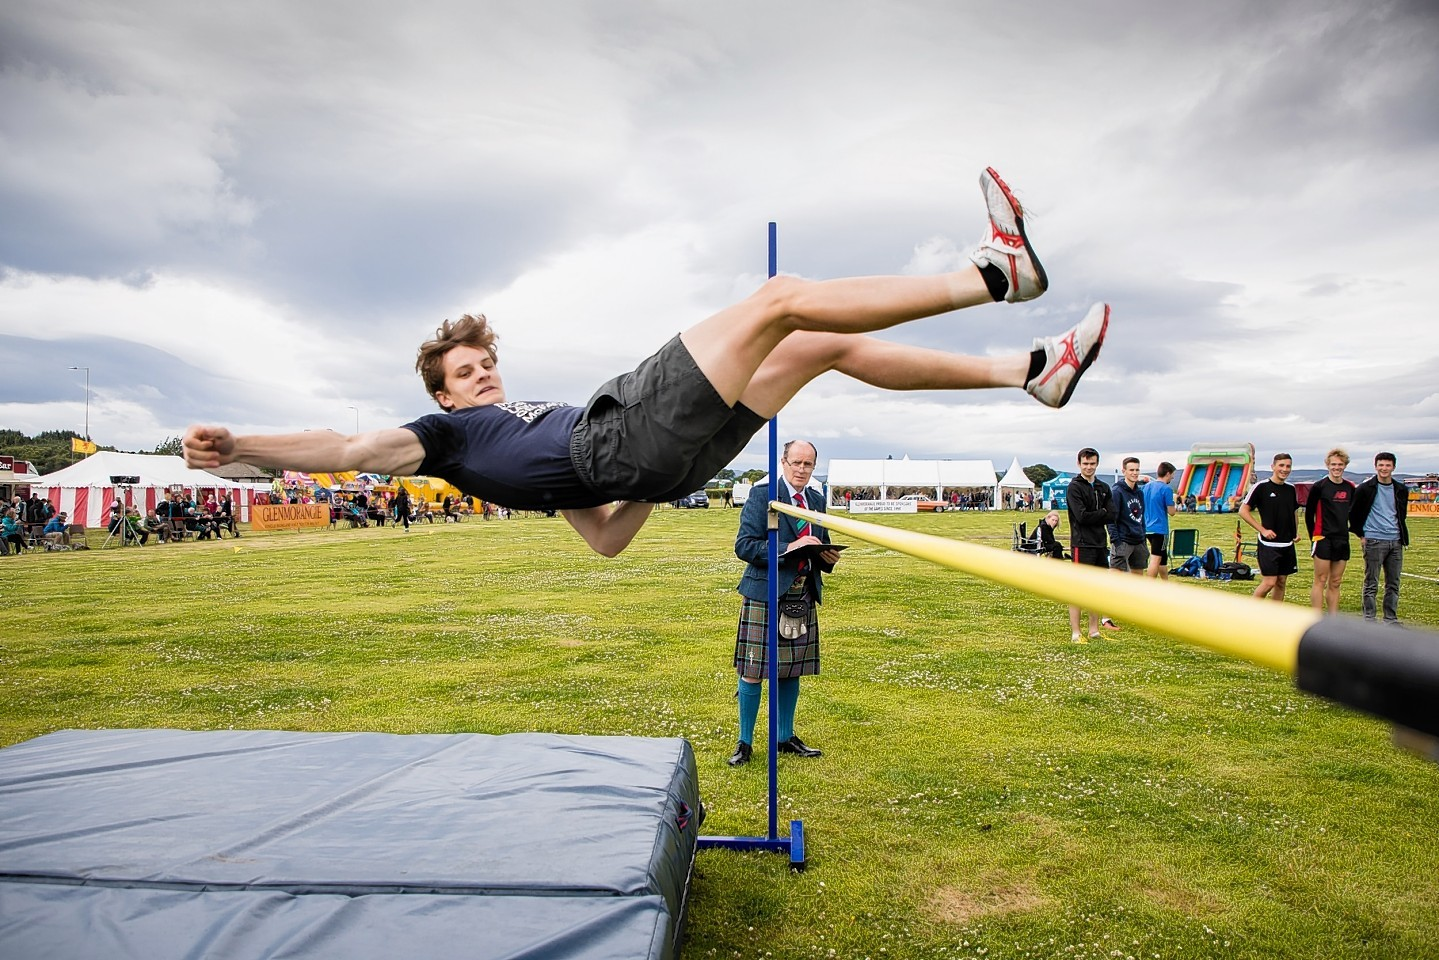 A competitor clears the bar in the high jump at the Tain Highland Gathering.